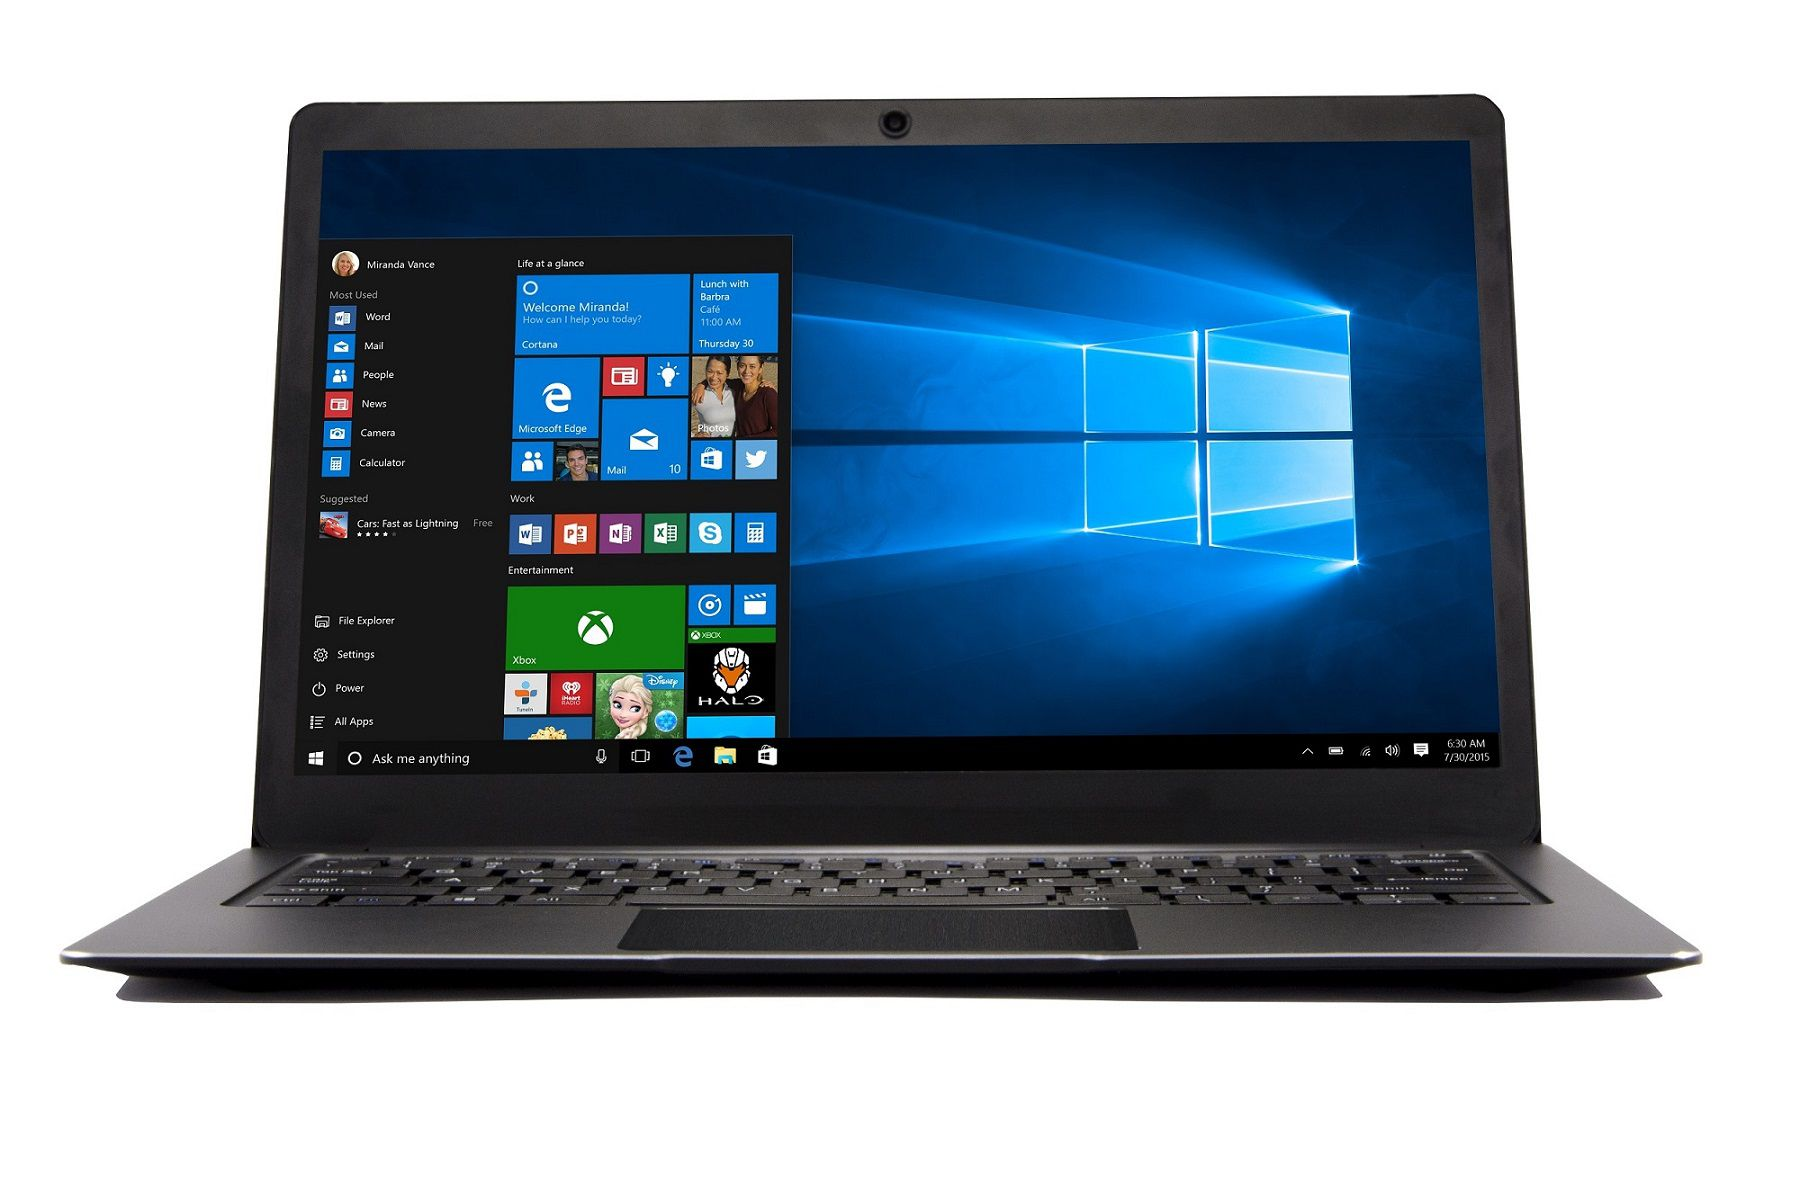 Notebook Happy Intel Celeron Tela 13.3 2gb Preto Windows 10